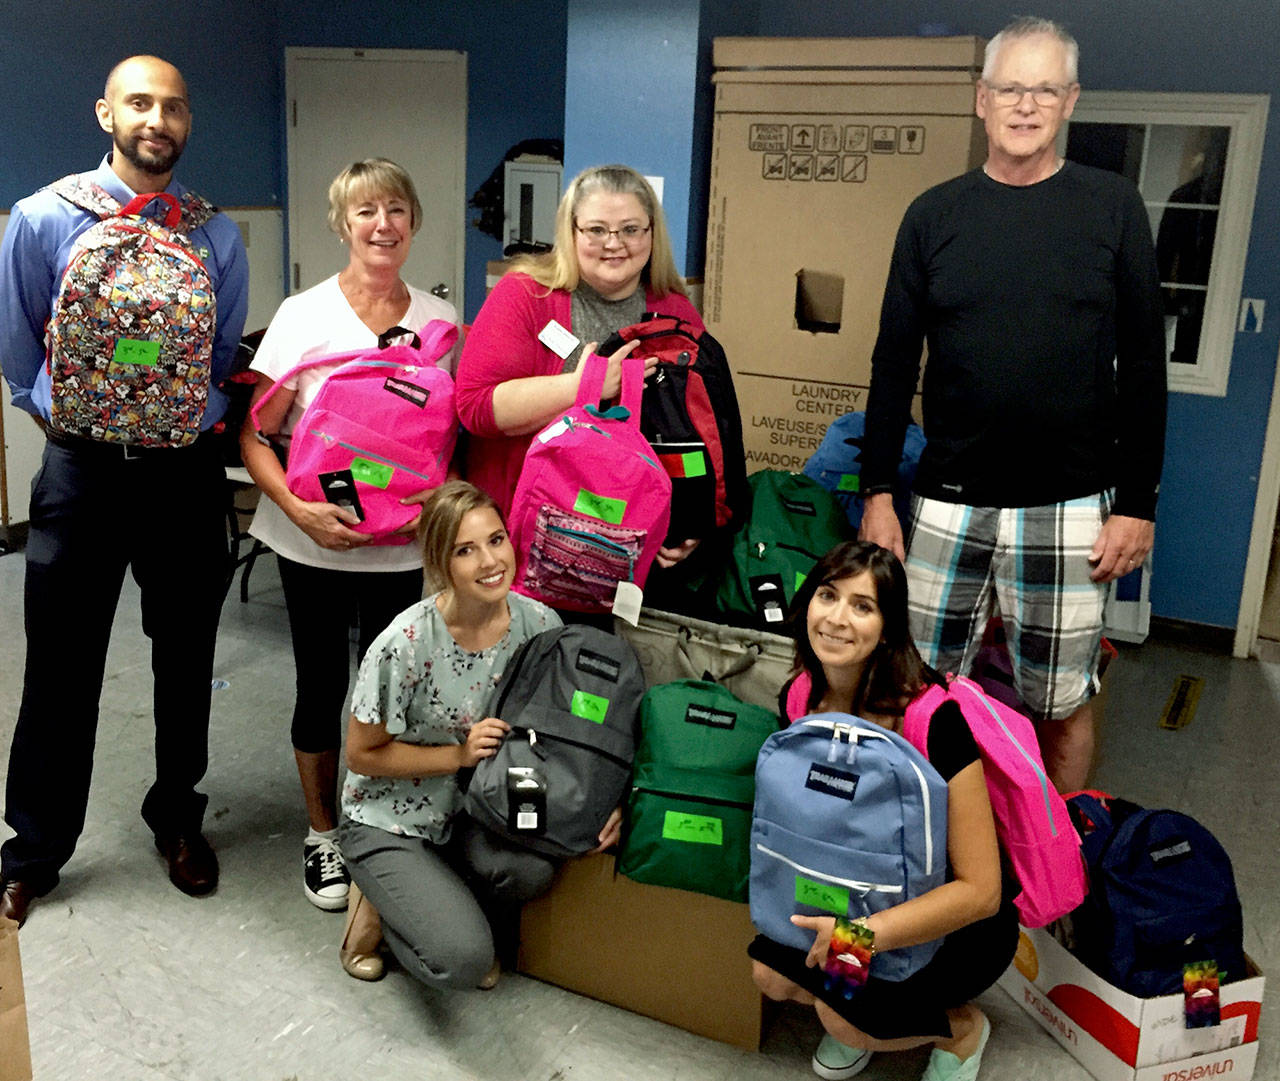 Volunteers on Aug. 21 packed 135 backpacks with school supplies for the YWCA School Days program. From left: Yusuf Hansia, Jane Tocco, Katie Thurston, Kristie Gilchrist, Yvonne De La Rosa and Gary Walderman. (Contributed photo)